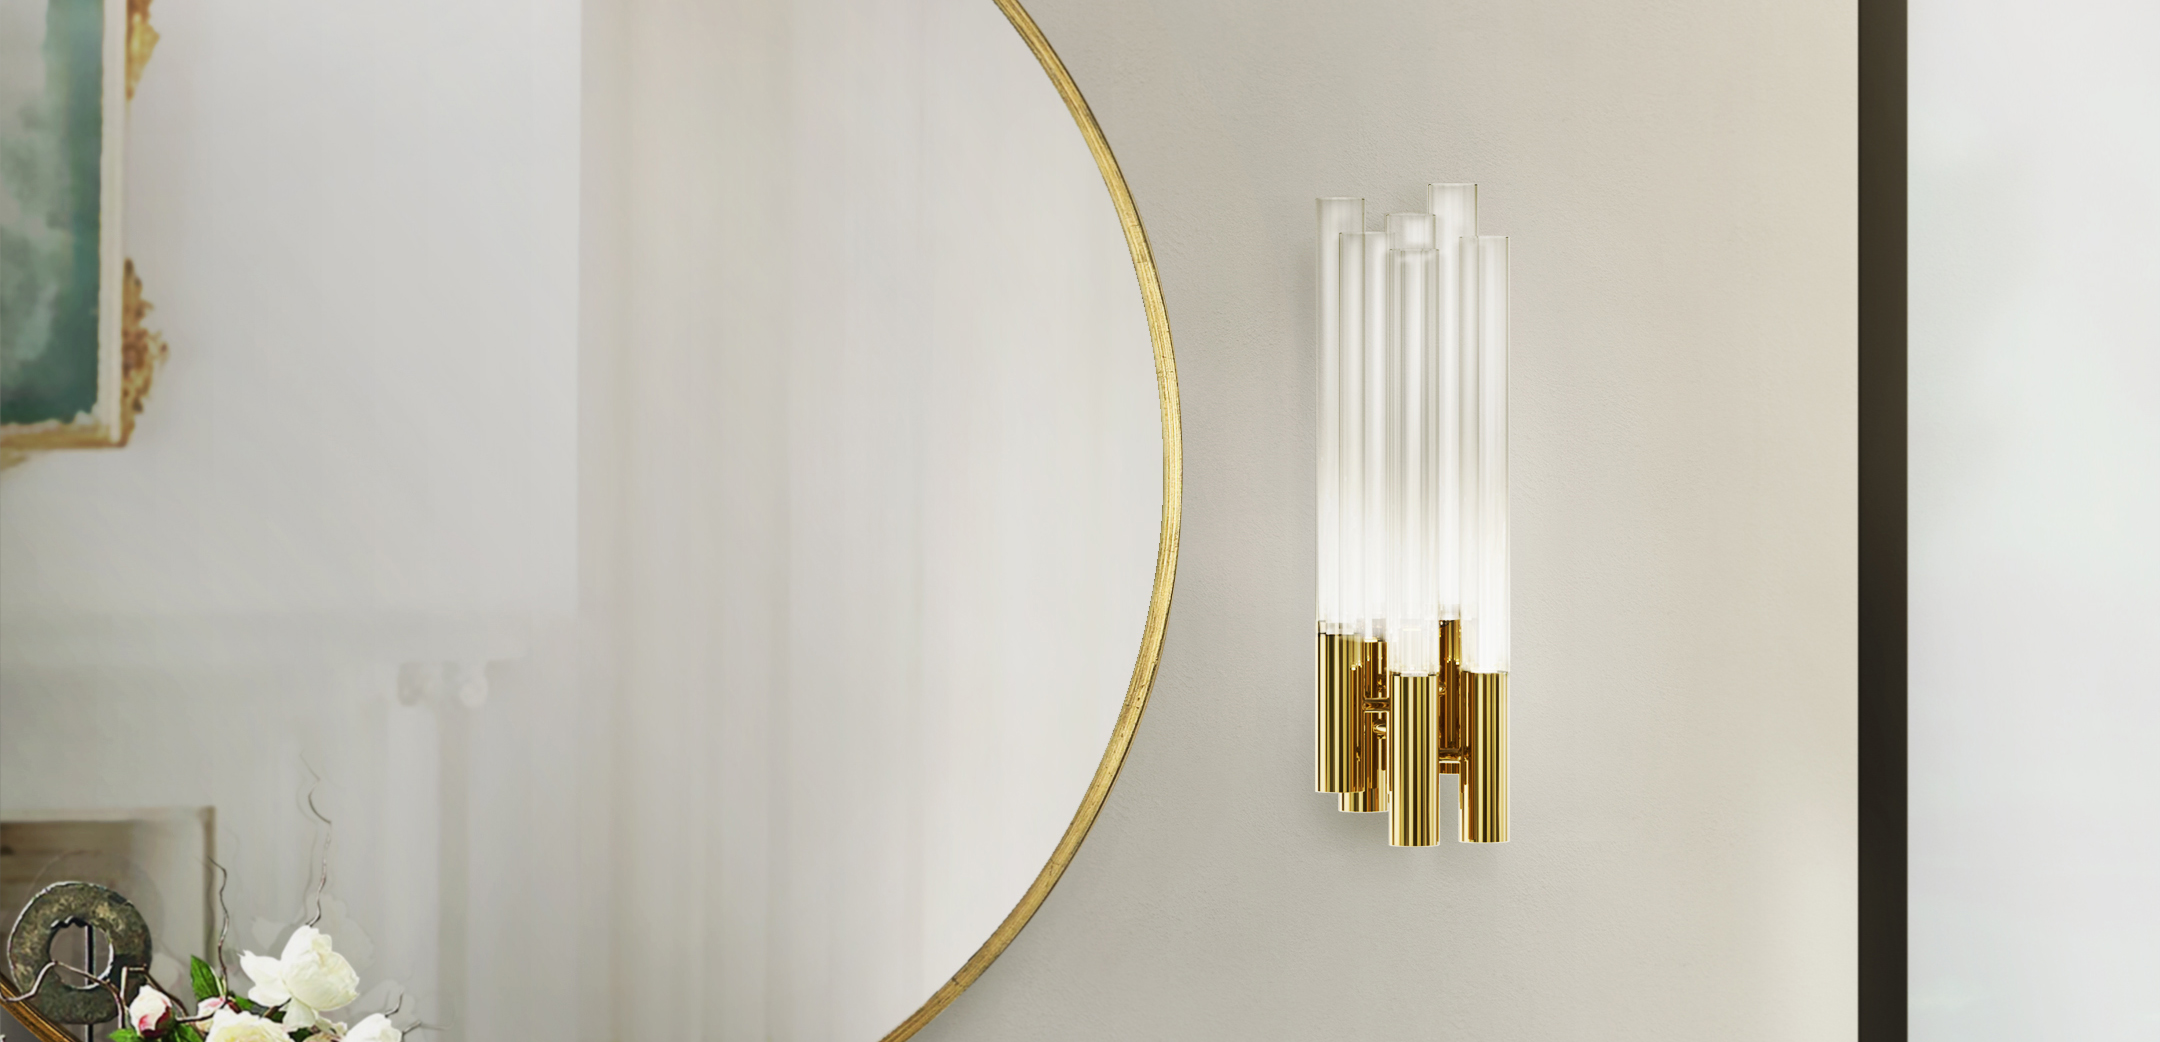 Ten wall lamps you'll fall in love by LUXXU luxury furniture Luxury Furniture Designs To Have In Your Next Interior Design Project Luxxu wall lamps feature luxury furniture Luxury Furniture Designs To Have In Your Next Interior Design Project Luxxu wall lamps feature